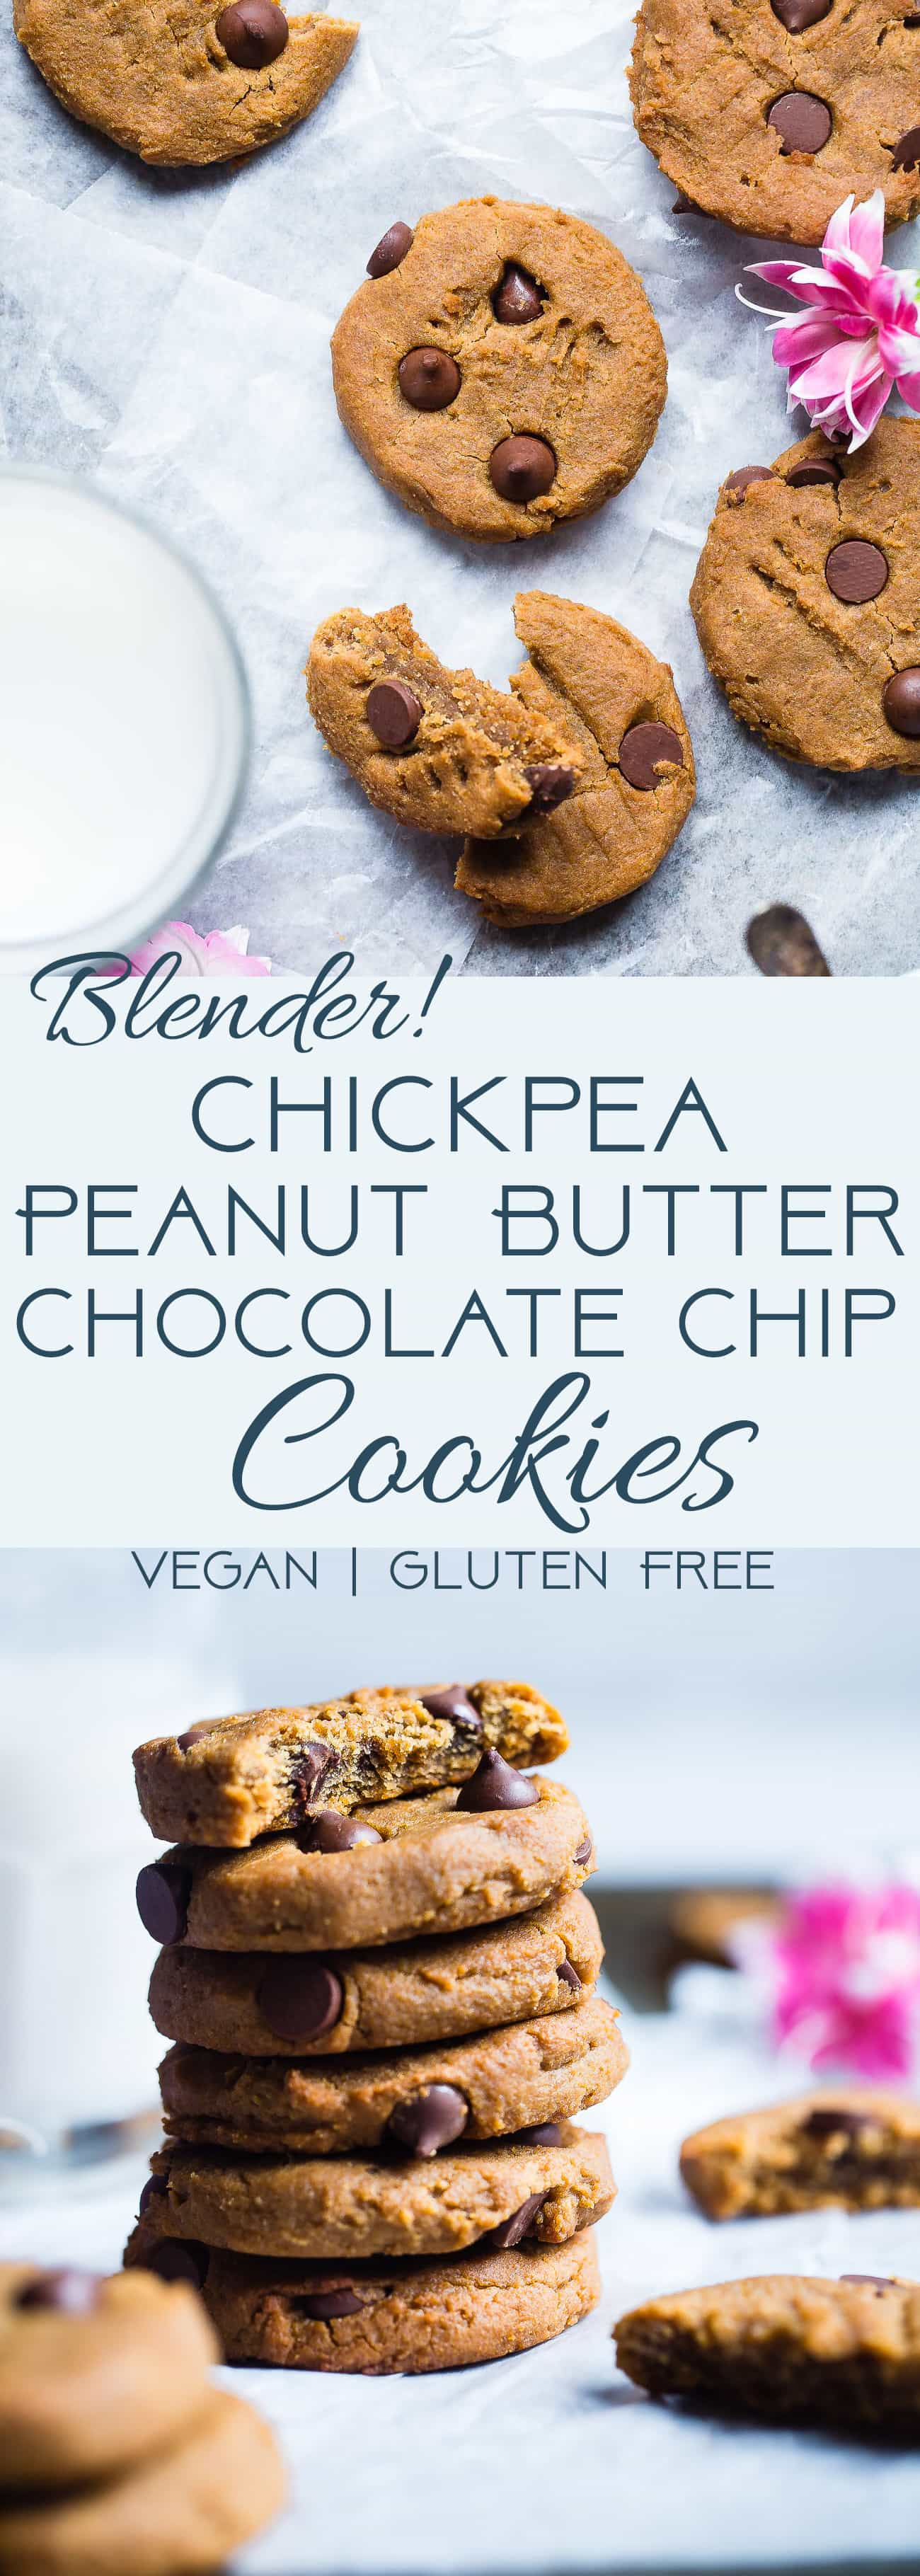 PPeanut Butter Chickpea Chocolate Chip Cookies - These kid-friendly, vegan cookies are SO soft and chewy! You would never believe they are healthy and gluten/grain/dairy/egg AND refined sugar free! | Foodfaithfitness.com | @FoodFaithFit | Vegan chickpea cookies. healthy chickpea cookies. gluten free chocolate chip cookies. healthy chocolate chip cookies. vegan chocolate chip cookies. chickpea cookie dough. flourless peanut butter cookies. gluten free peanut butter cookies. healthy peanut butter cookies